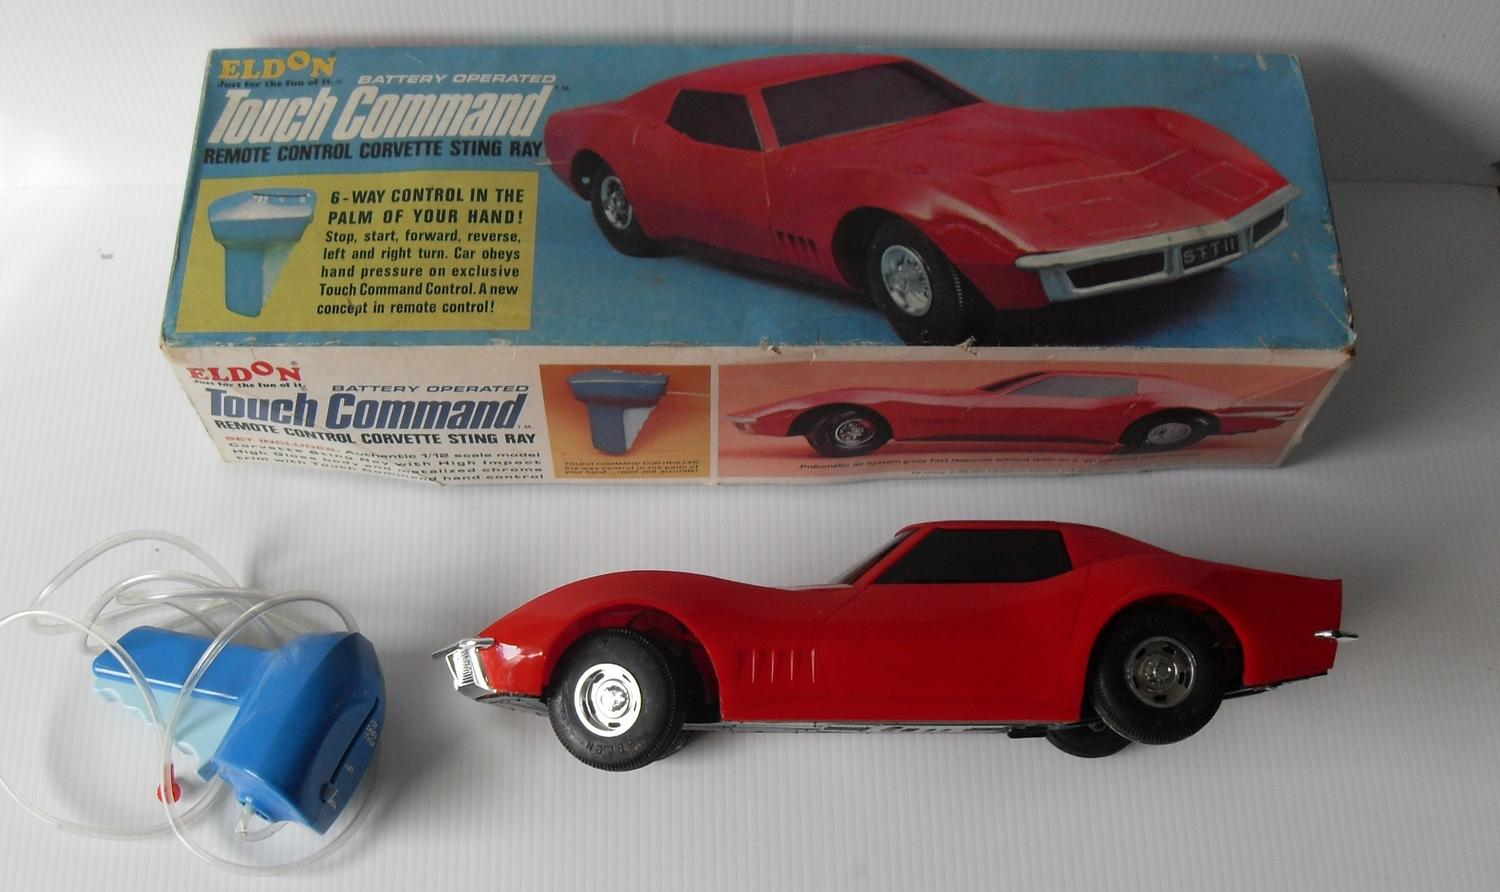 Lot 166 A Boxed Eldon Battery Operated Touch Command Remote Control Corvette Stingray Car In